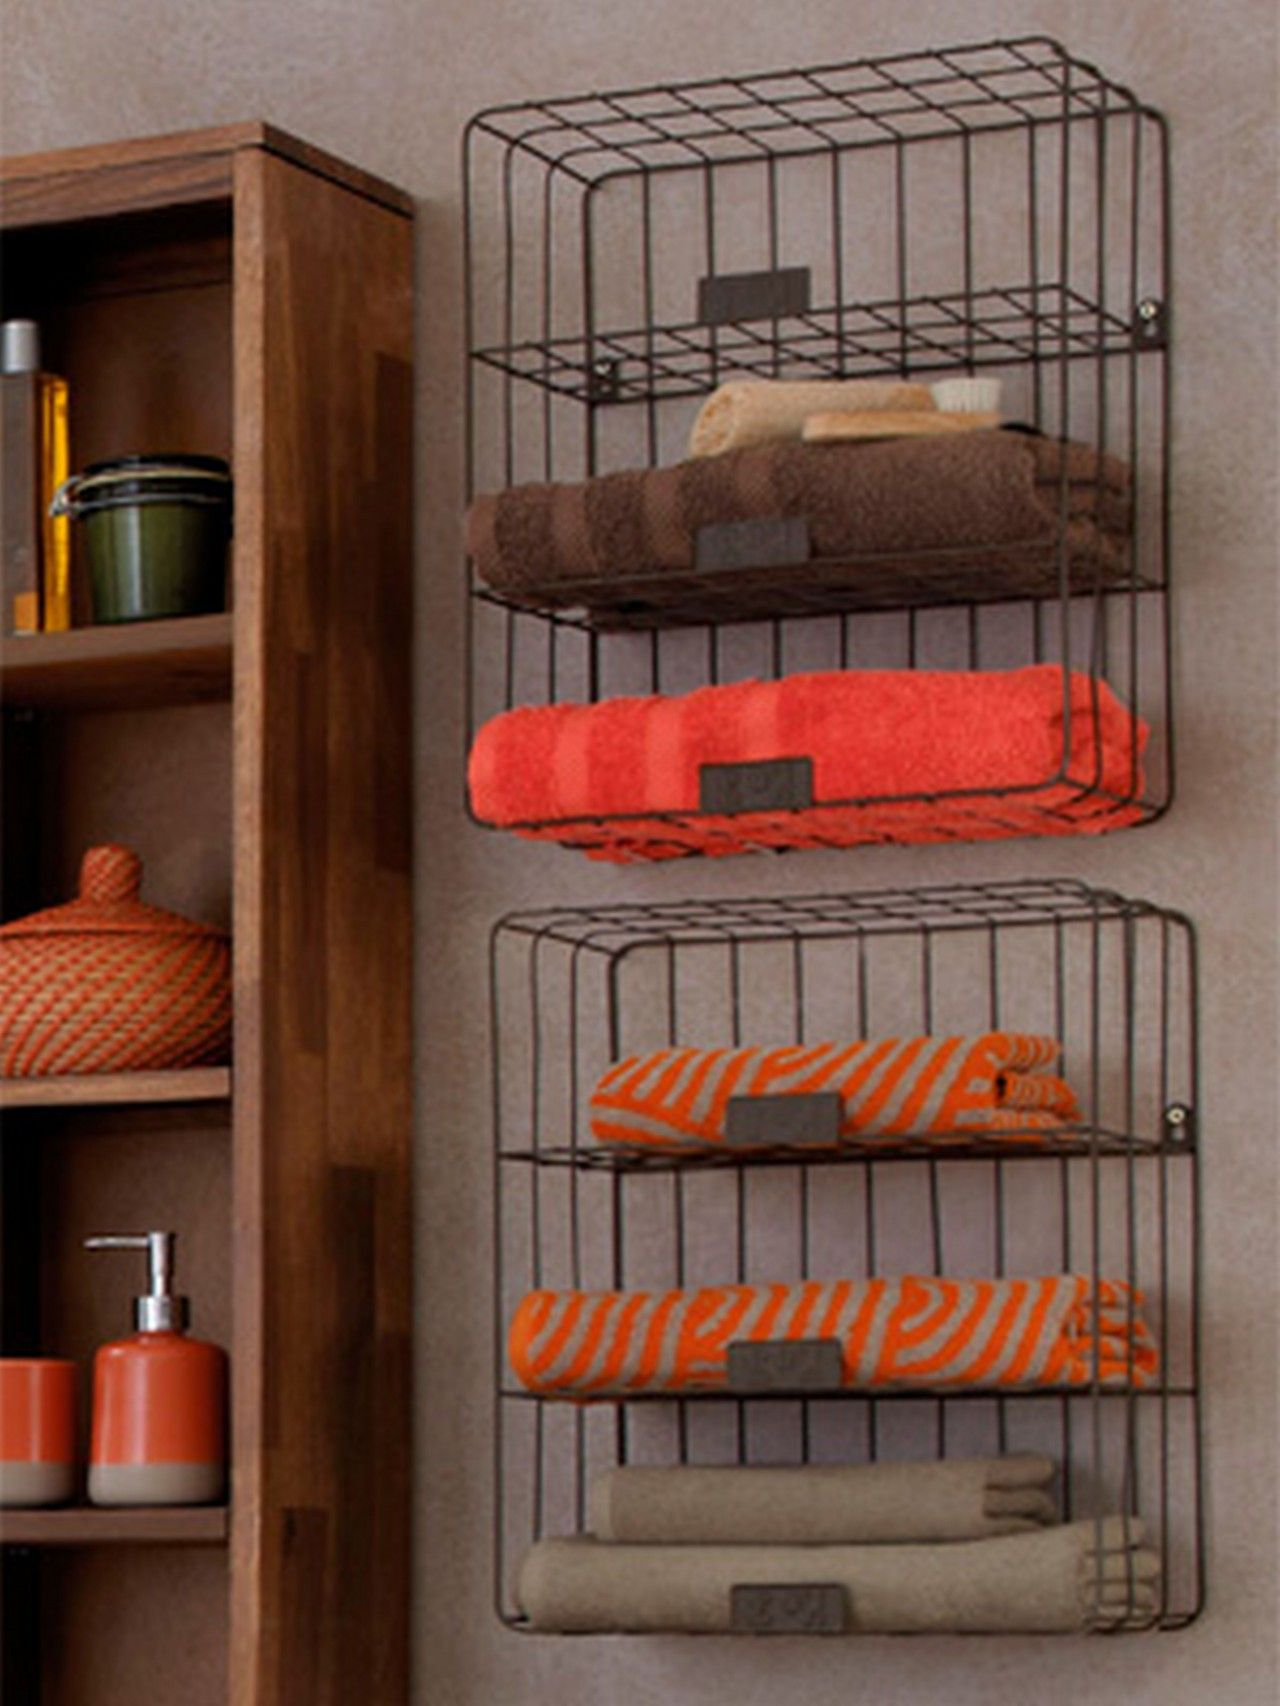 Adorable Wall Mounted Iron Rail Towel Storage Feature Wooden ...